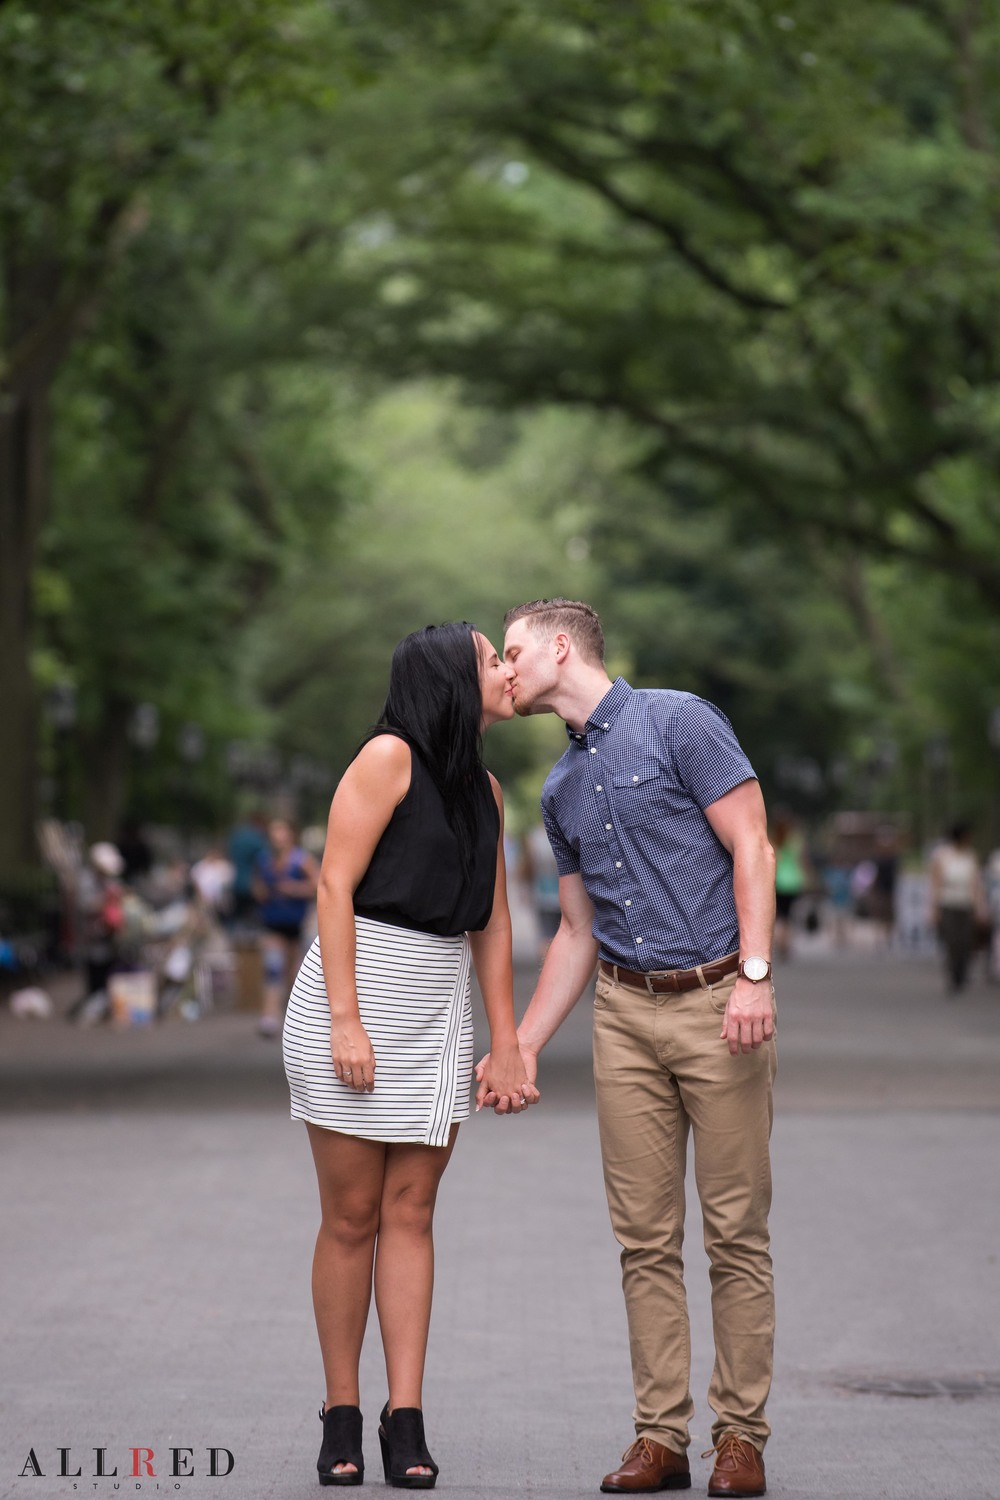 Suprise-Proposal-wedding-new-york-allred-studio-destination-wedding-photographer-new-jersey-hudson-valley-central-park-0596.jpg